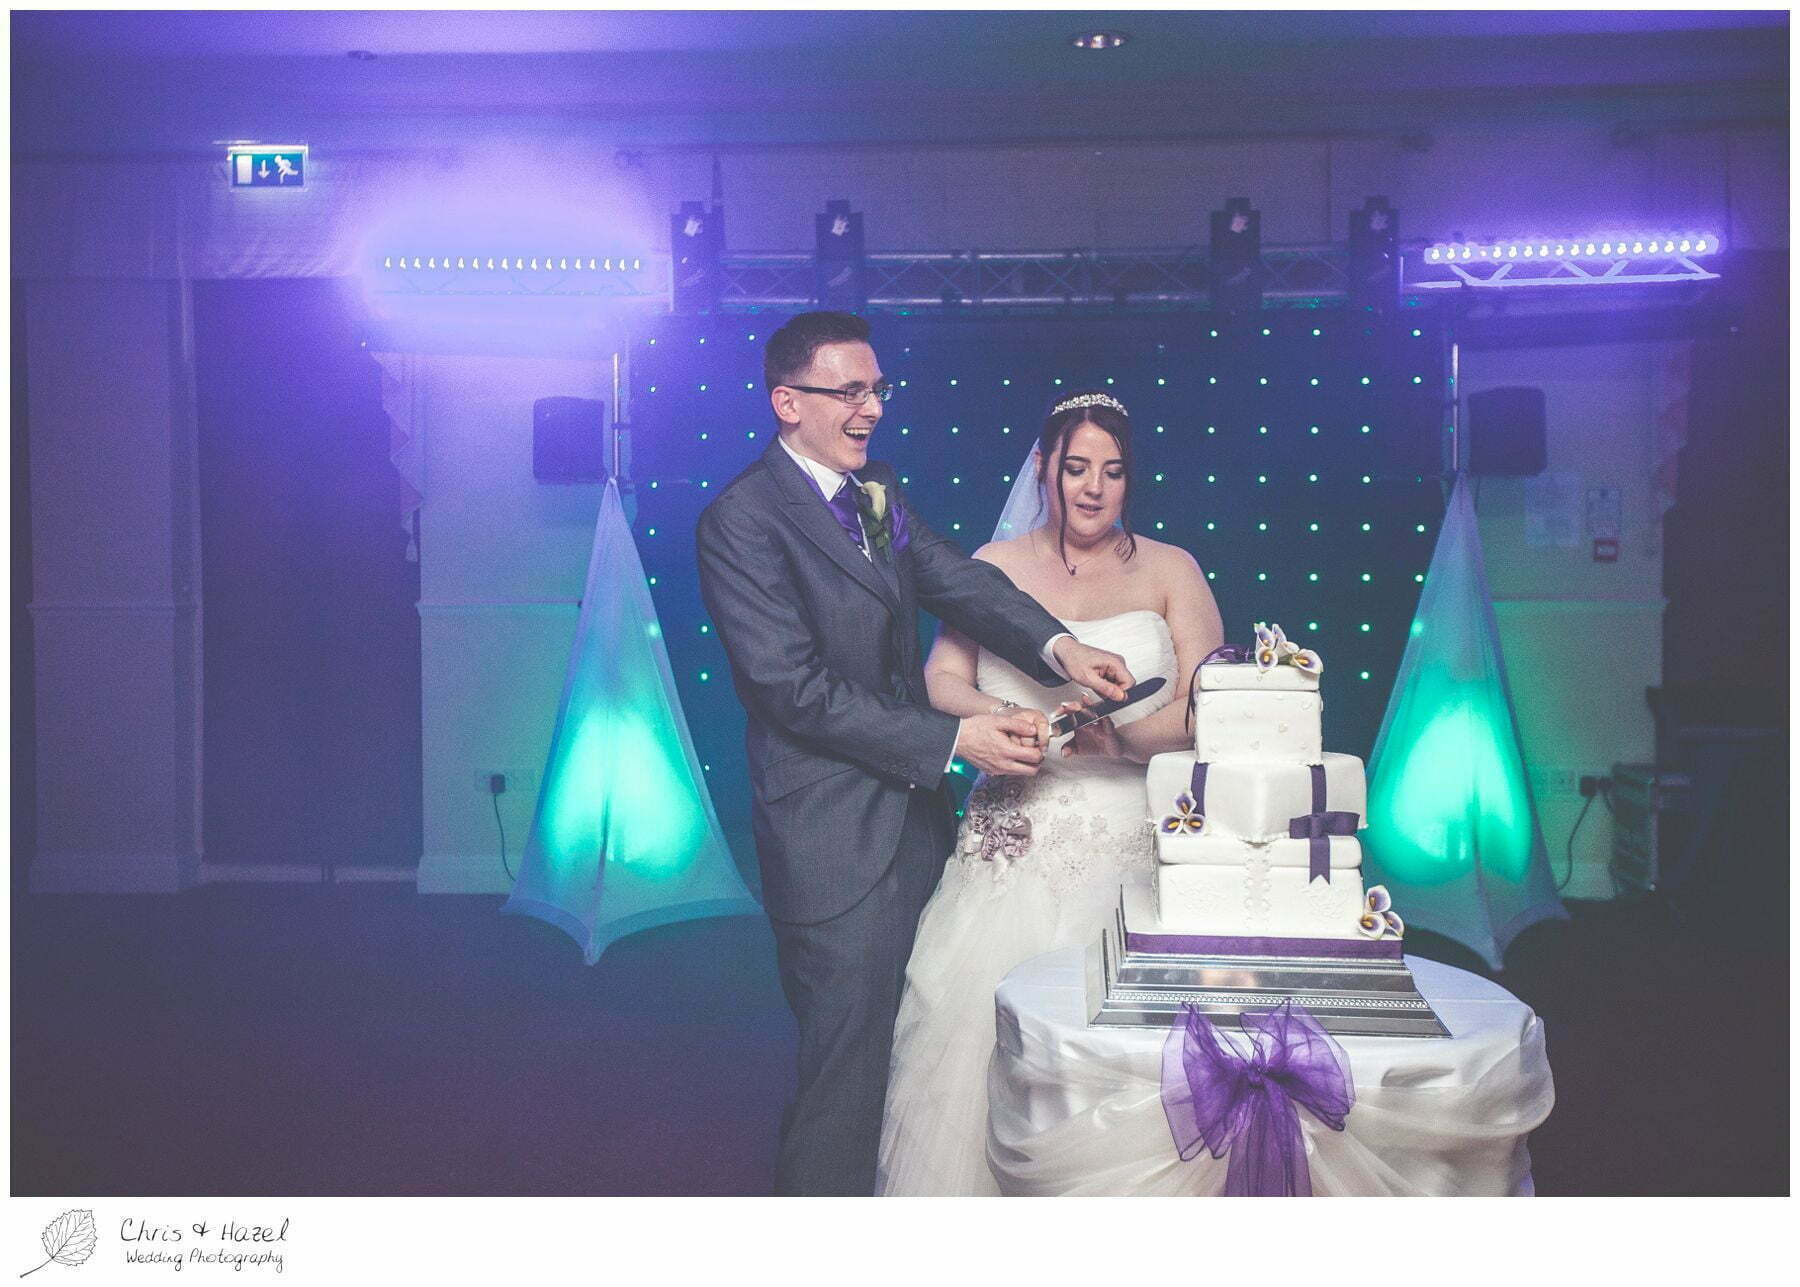 bride and groom cake cut cutting before first dance on dance floor, bagden hall wedding venue, documentary wedding photography, denny dale, huddersfield, Wedding Photographer, Bagden Hall, Wedding Photography, Chris and Hazel Wedding Photography, Alex tomenson, Vicky hunt